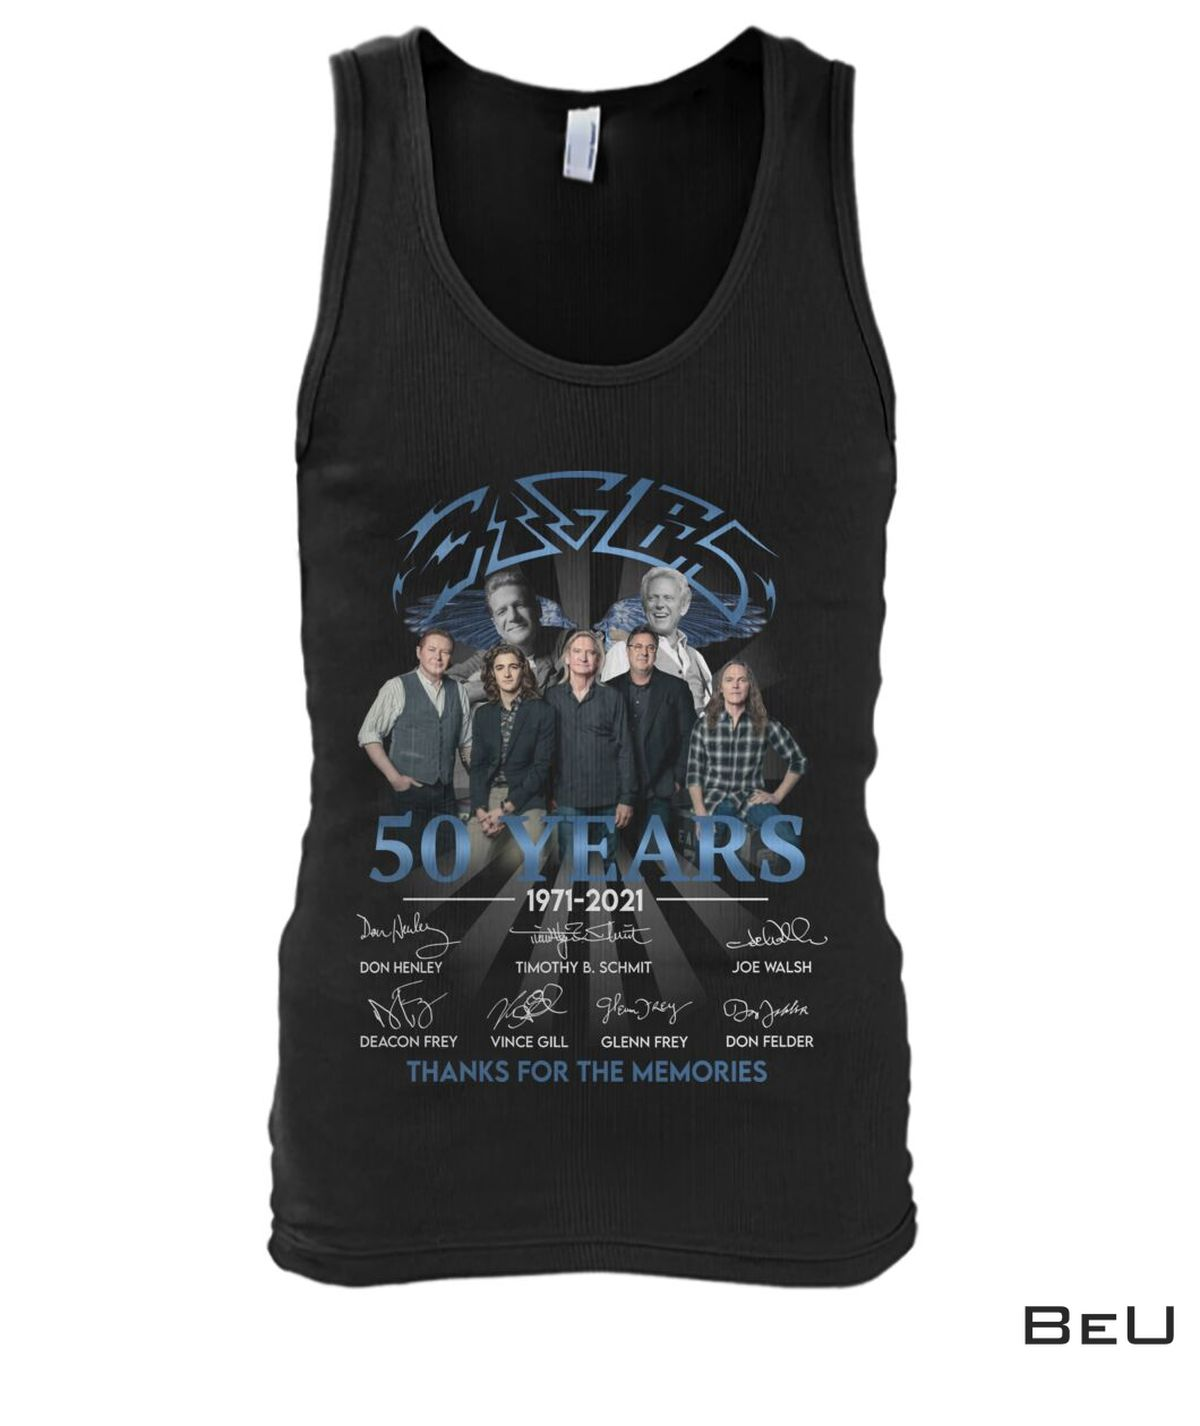 Eagles Rock Band 50 Years Thank You For The Memories Shirt b